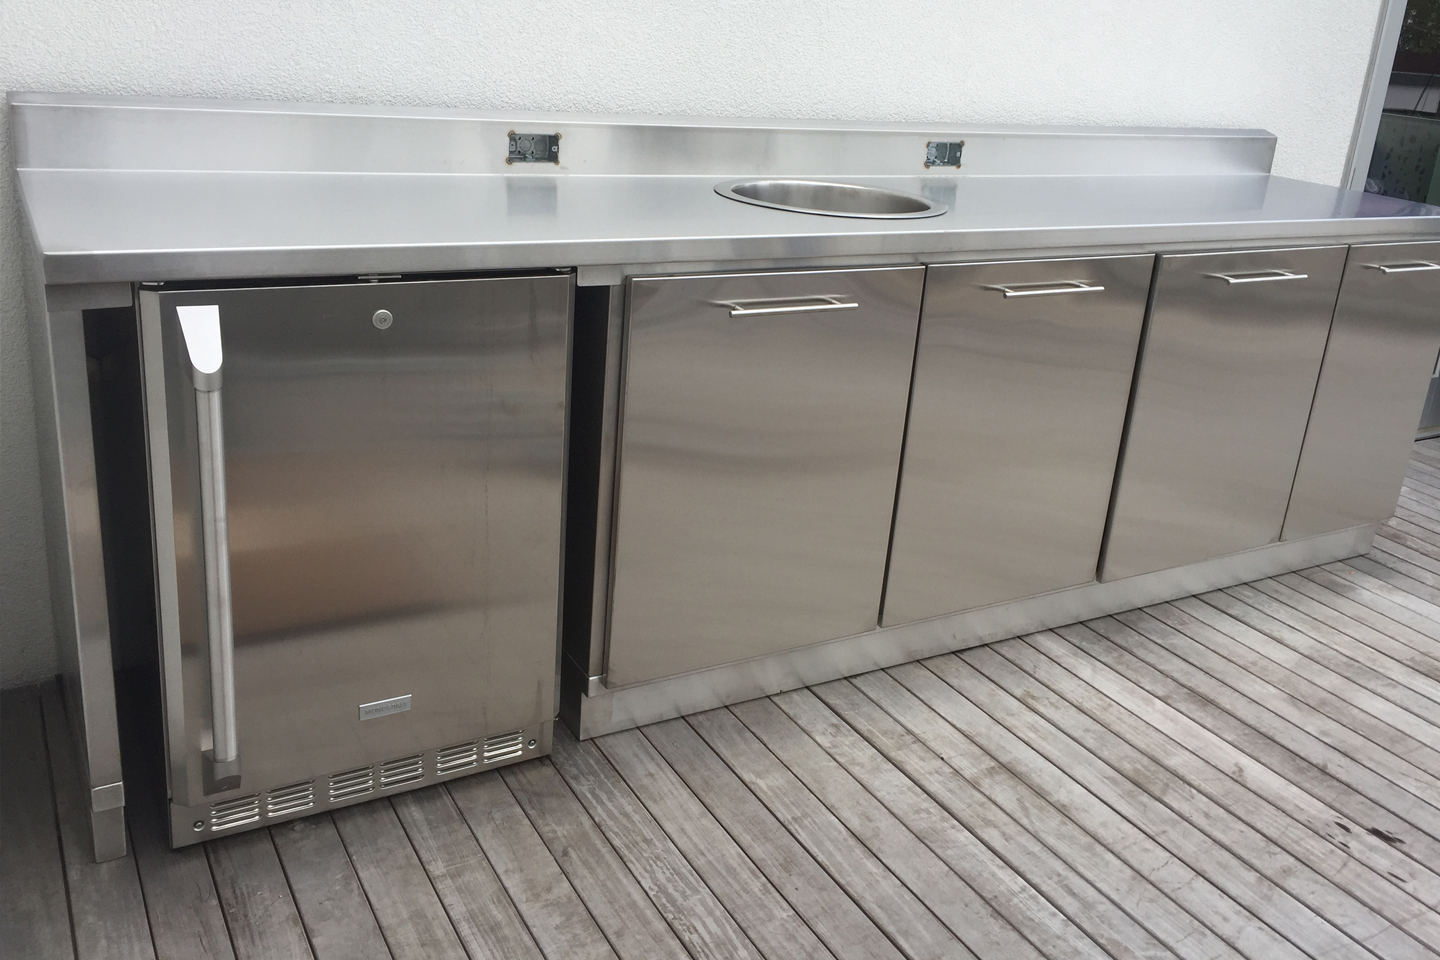 Rooftop Outdoor Kitchen Cabinet